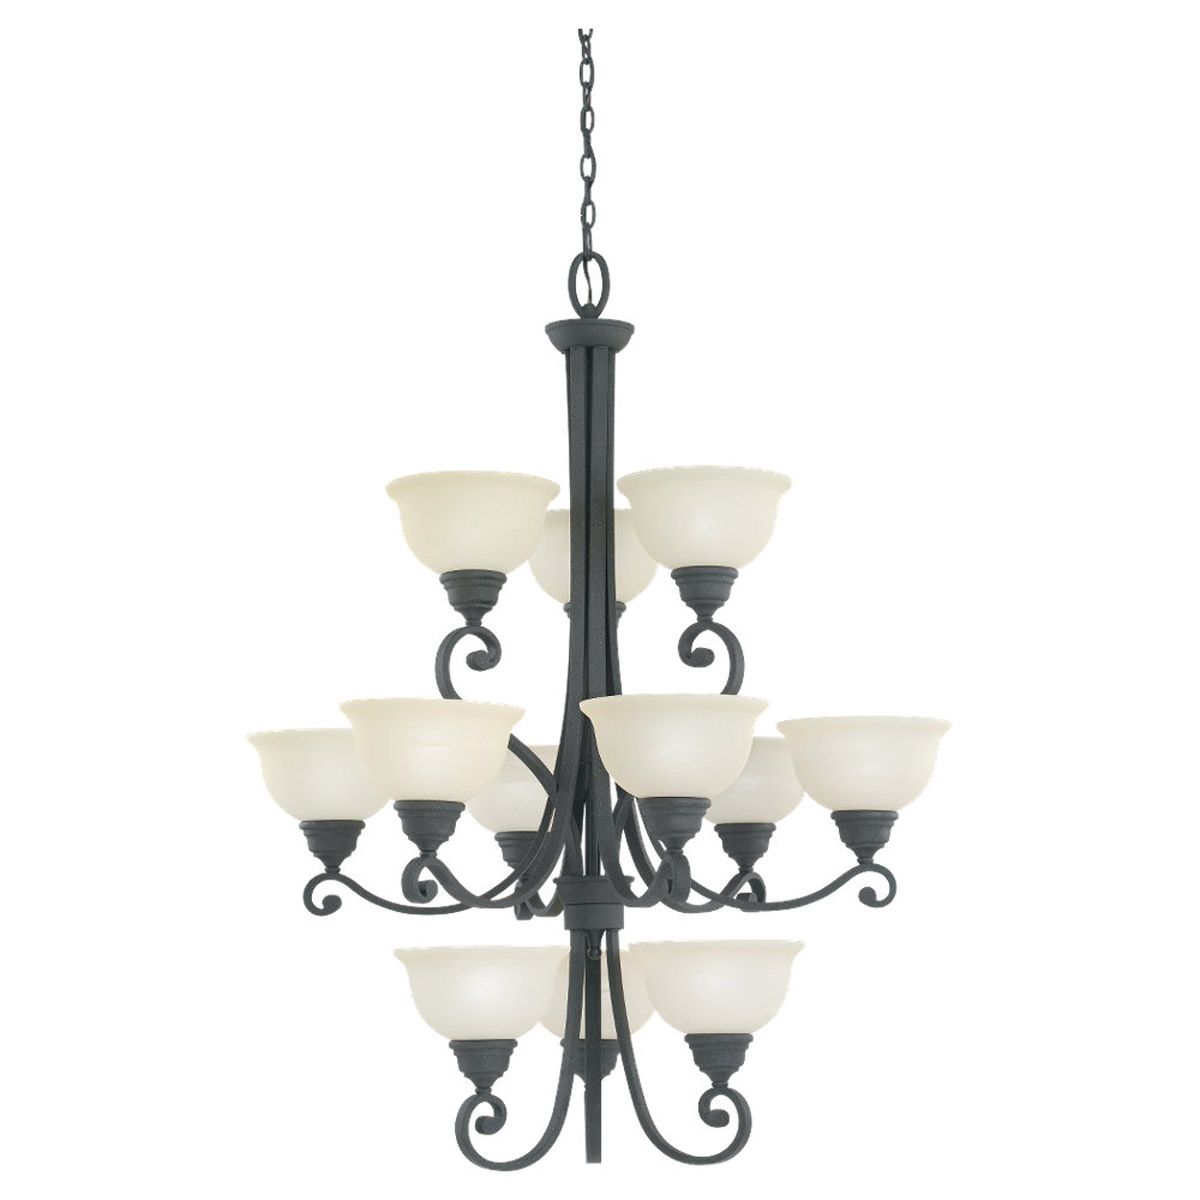 Sea Gull Lighting Serenity 12 Light Fluorescent Chandelier in Weathered Iron 39260BLE-07 photo